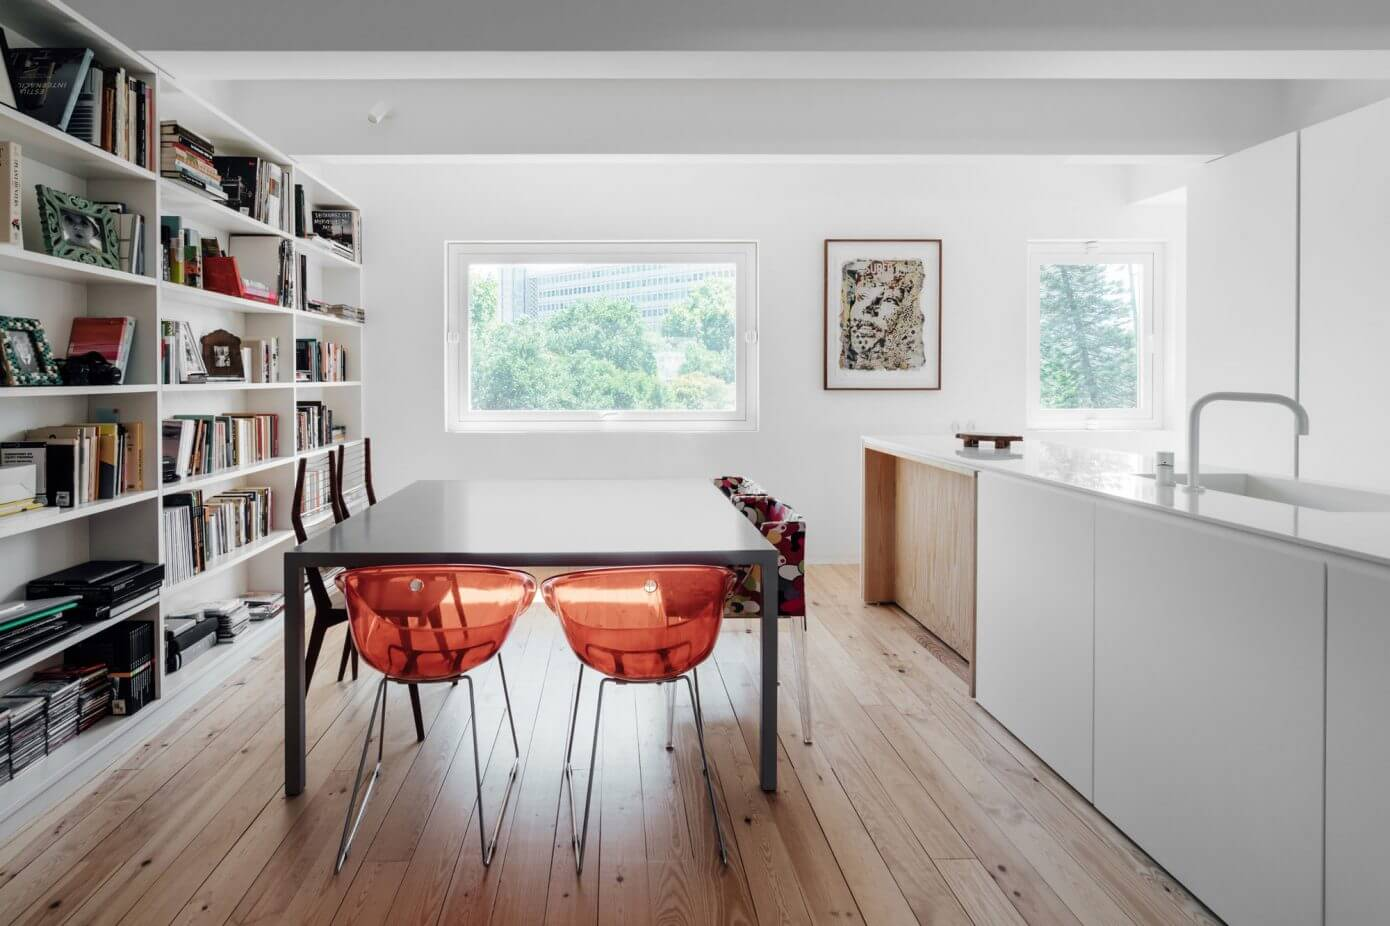 Apartment Remodel by Atelier Data